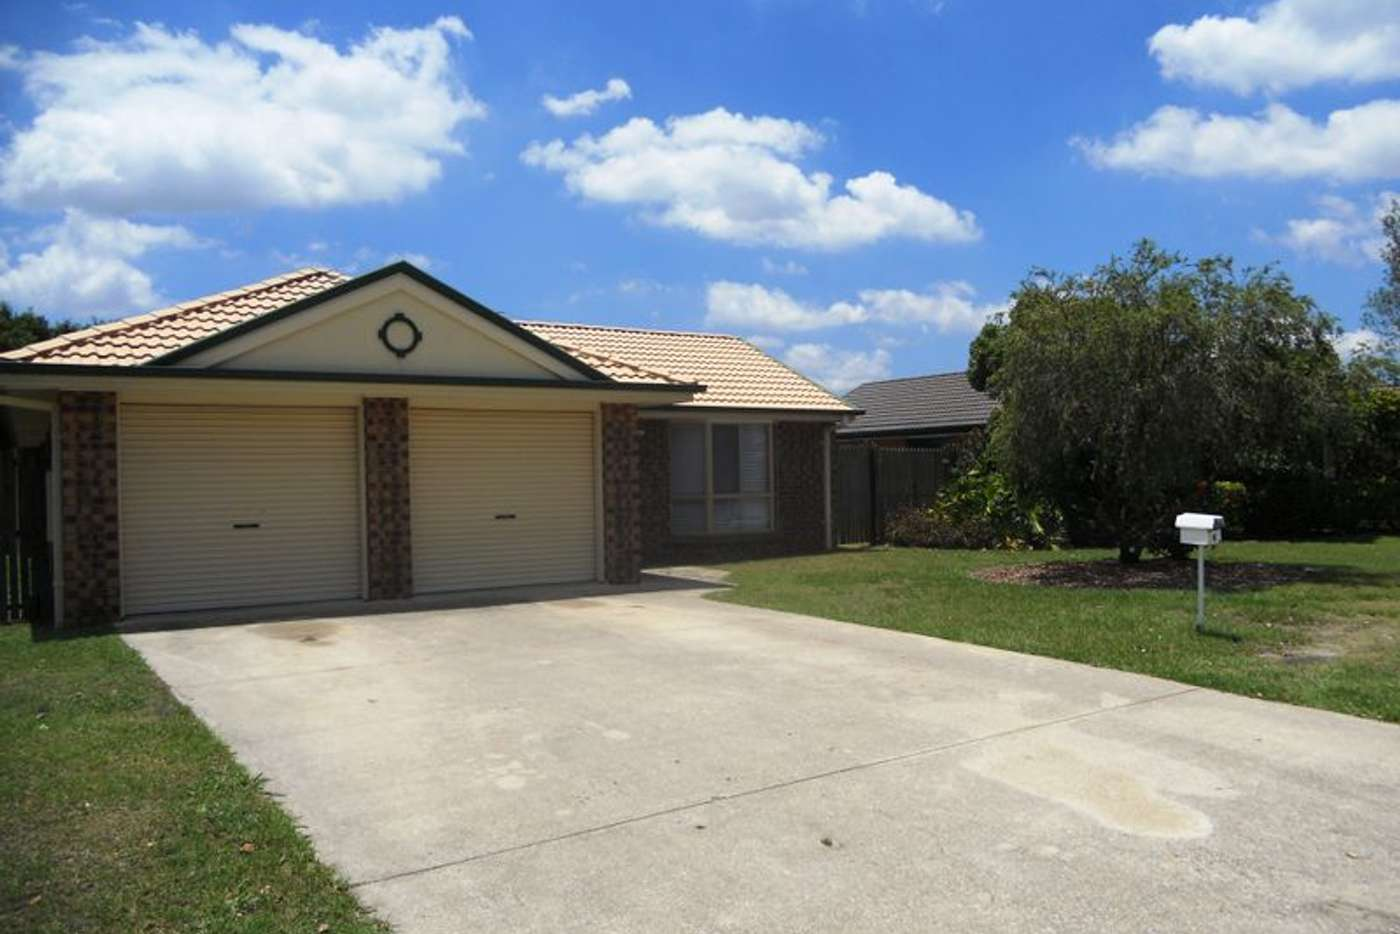 Main view of Homely house listing, 8 Craig Street, Crestmead QLD 4132